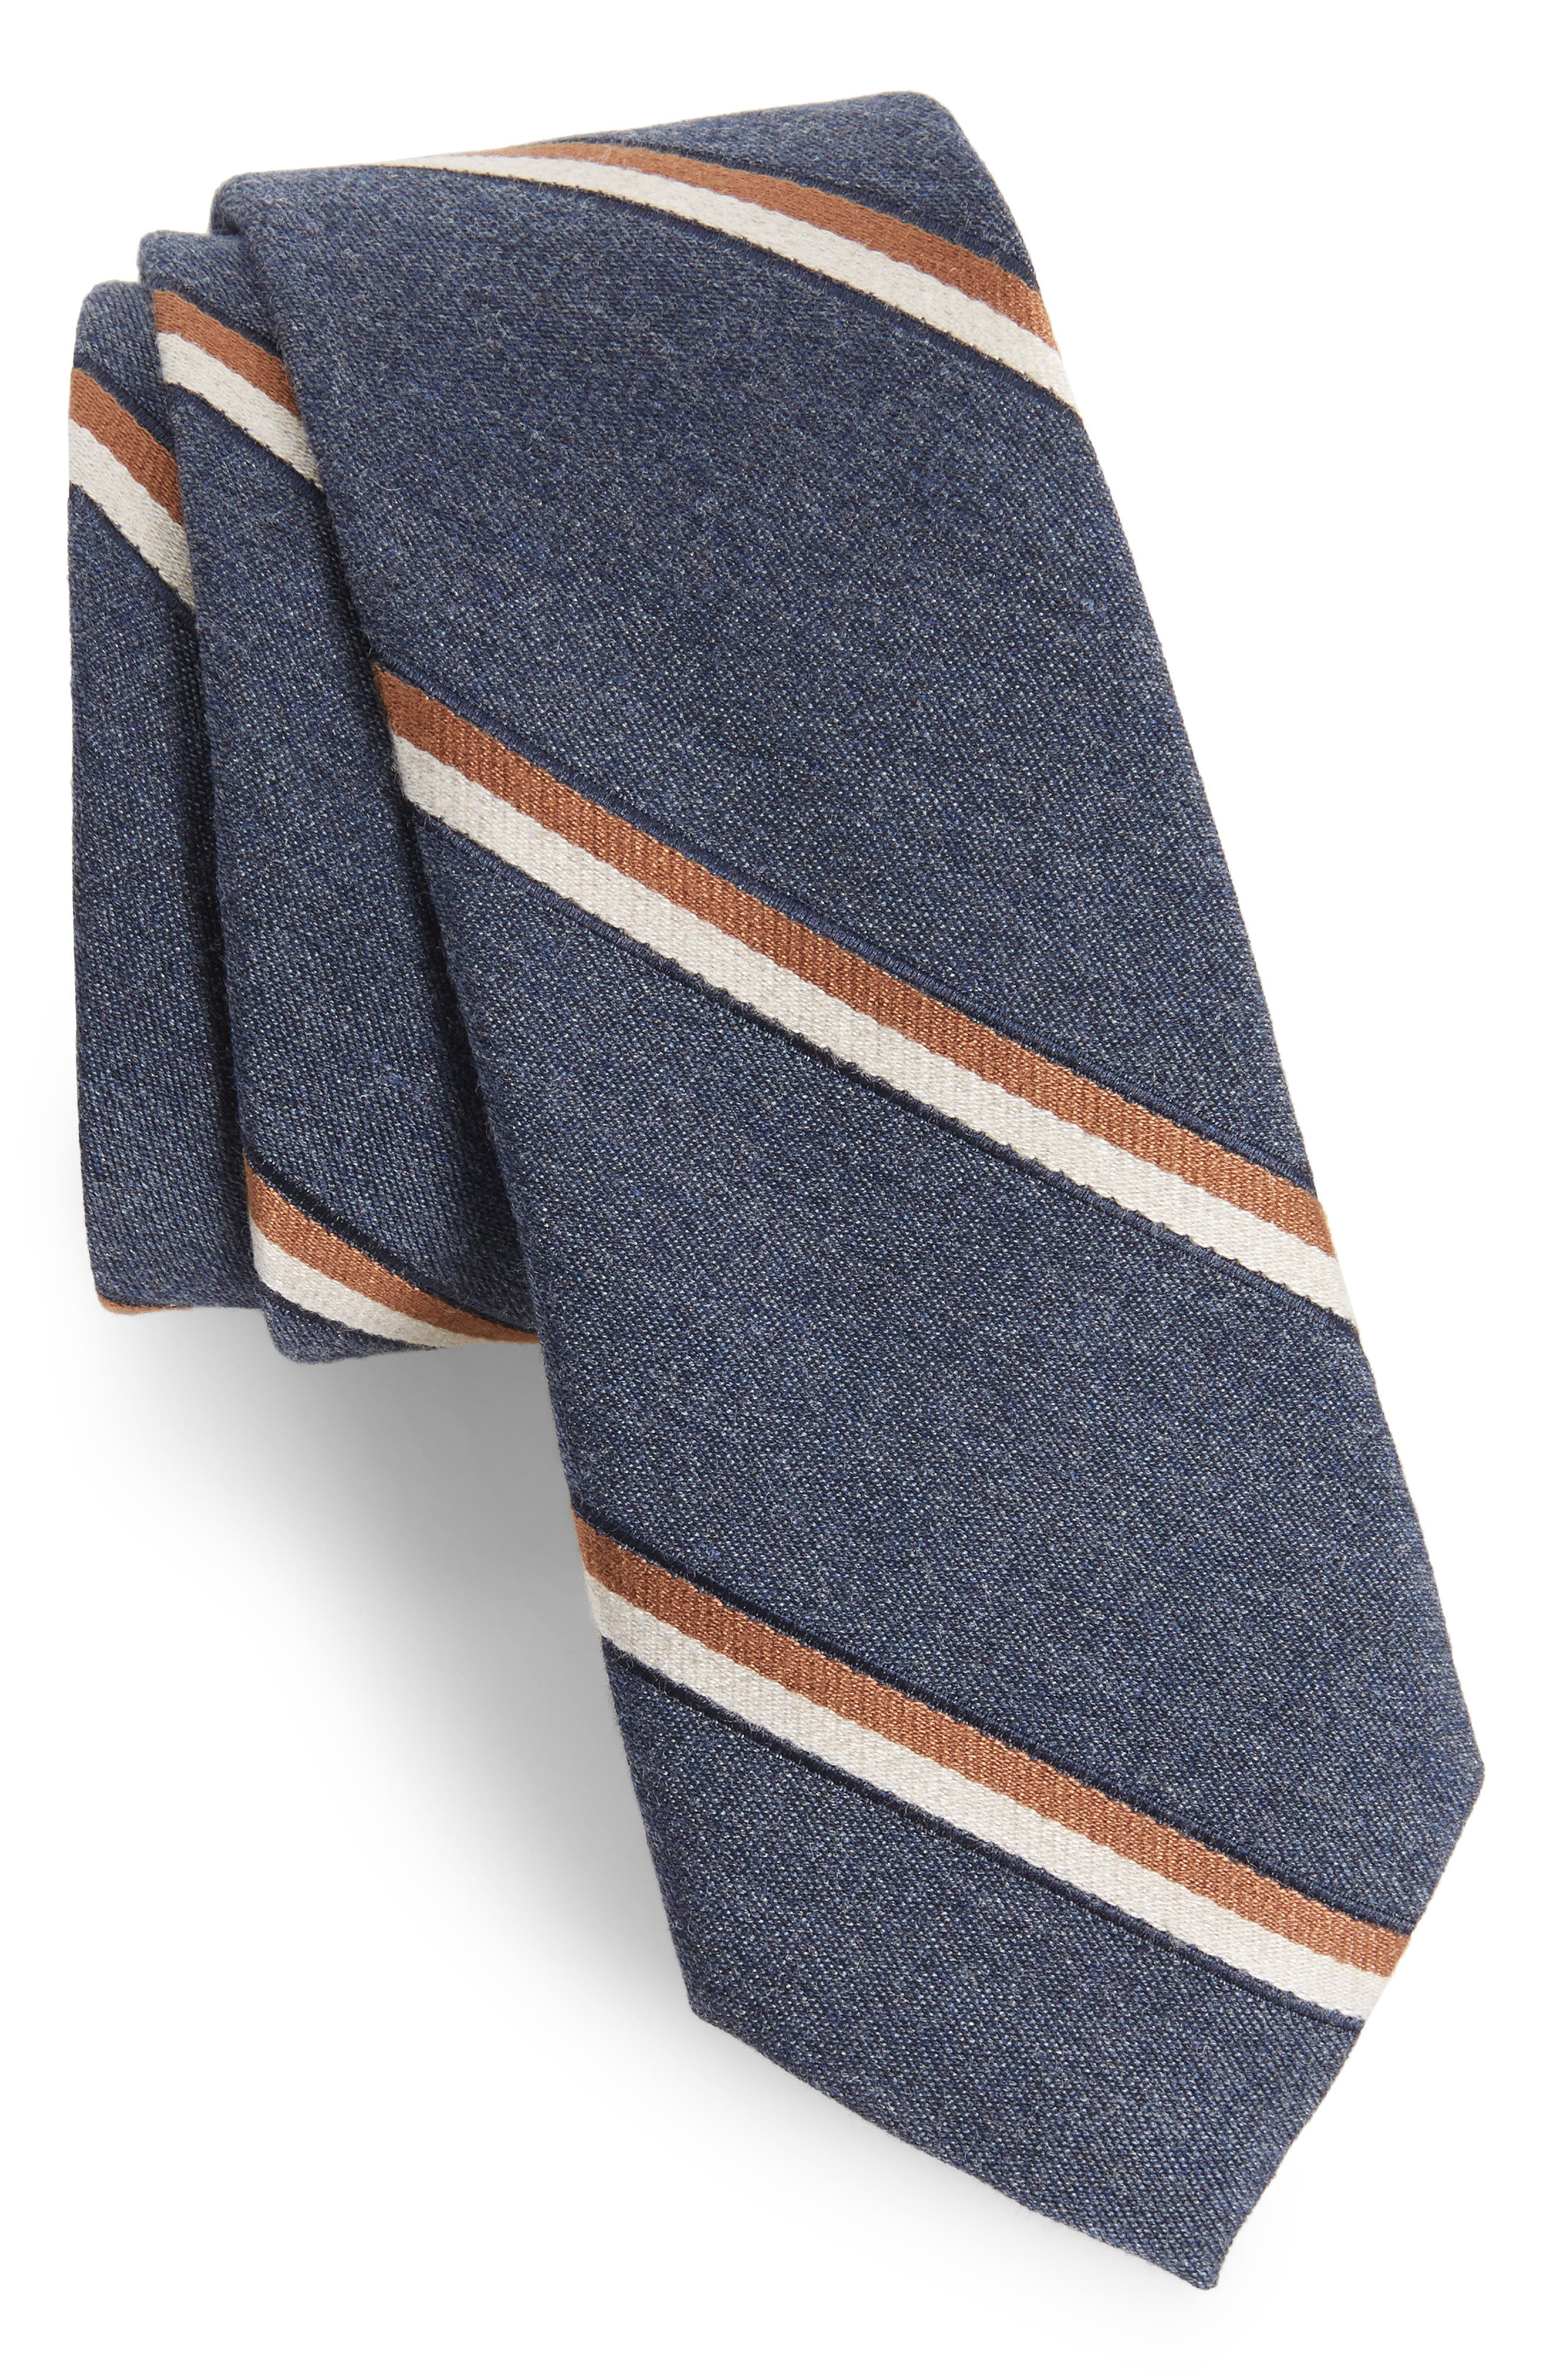 Bushwick Stripe Cotton Blend Skinny Tie,                         Main,                         color, Brown